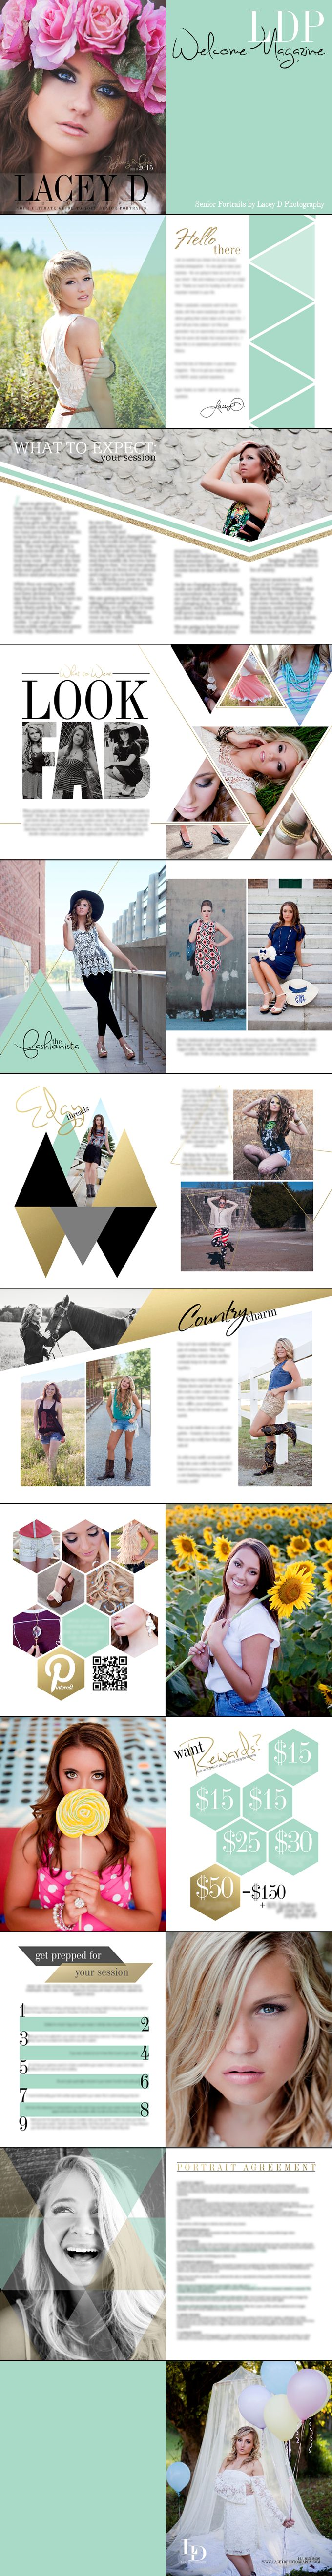 Lacey D Photography Welcome Magazine - Welcome Packet - Senior Portraits - Packaging Check out the website, some girl tried a new diet and tracked her results